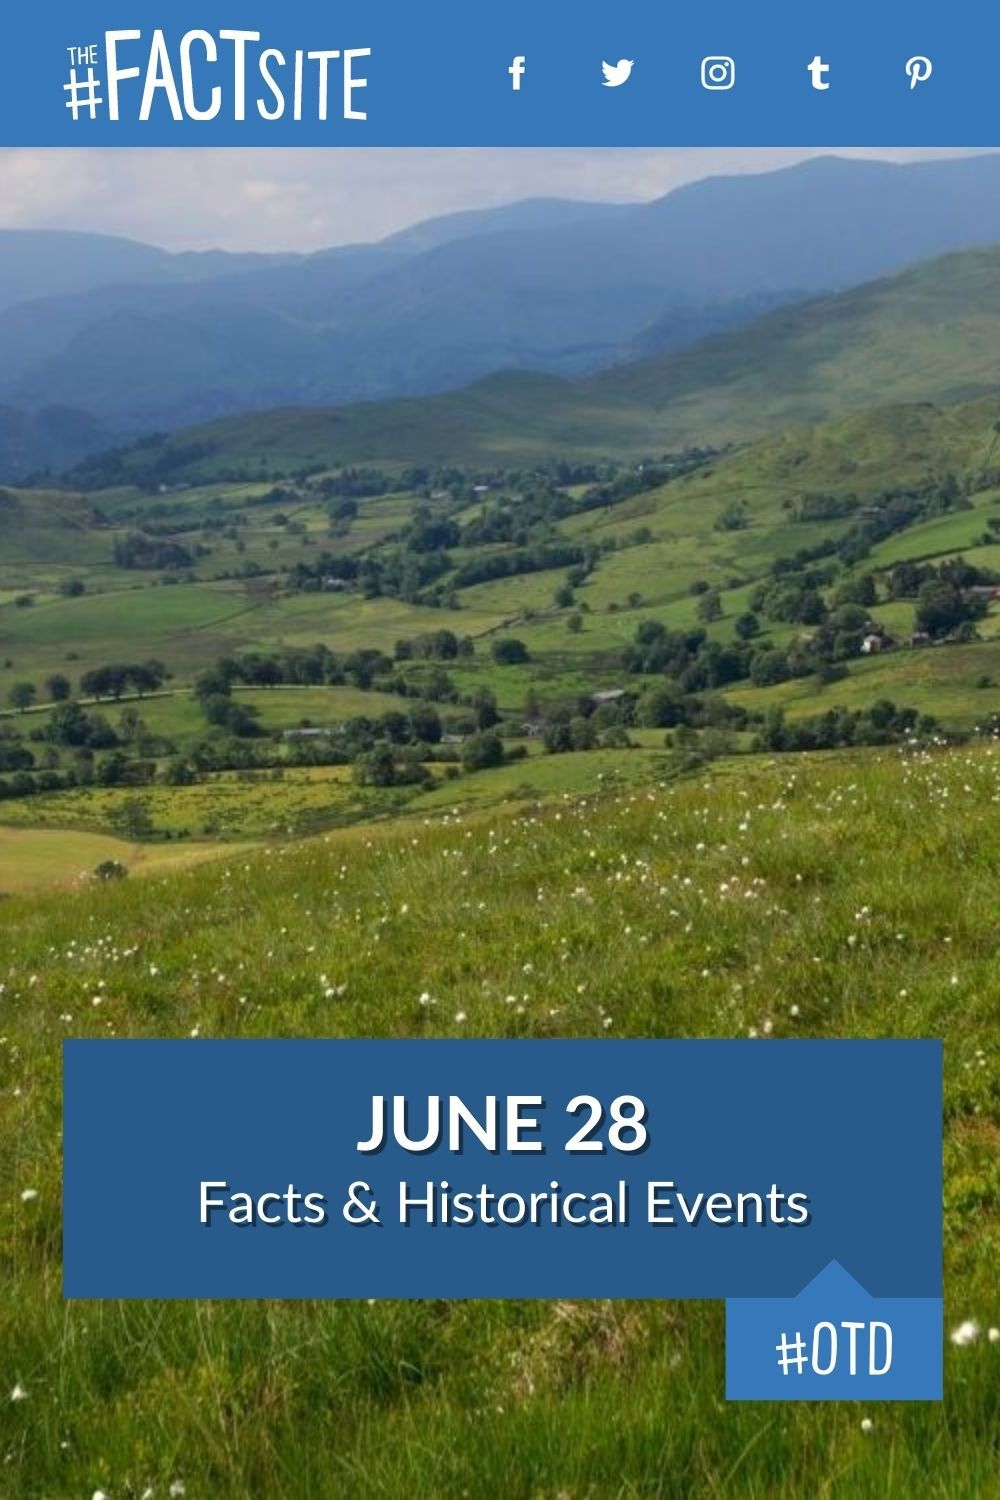 Facts & Historic Events That Happened on June 28